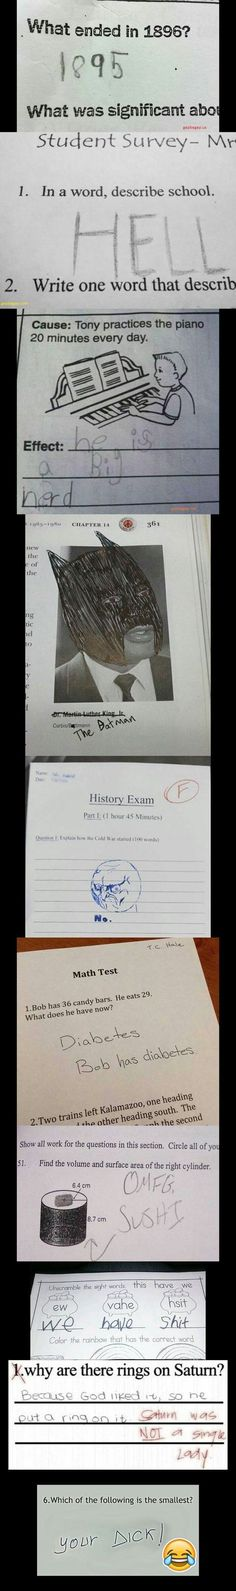 Top 10 Funny Meme About Smartass Kid vs. Test Answers